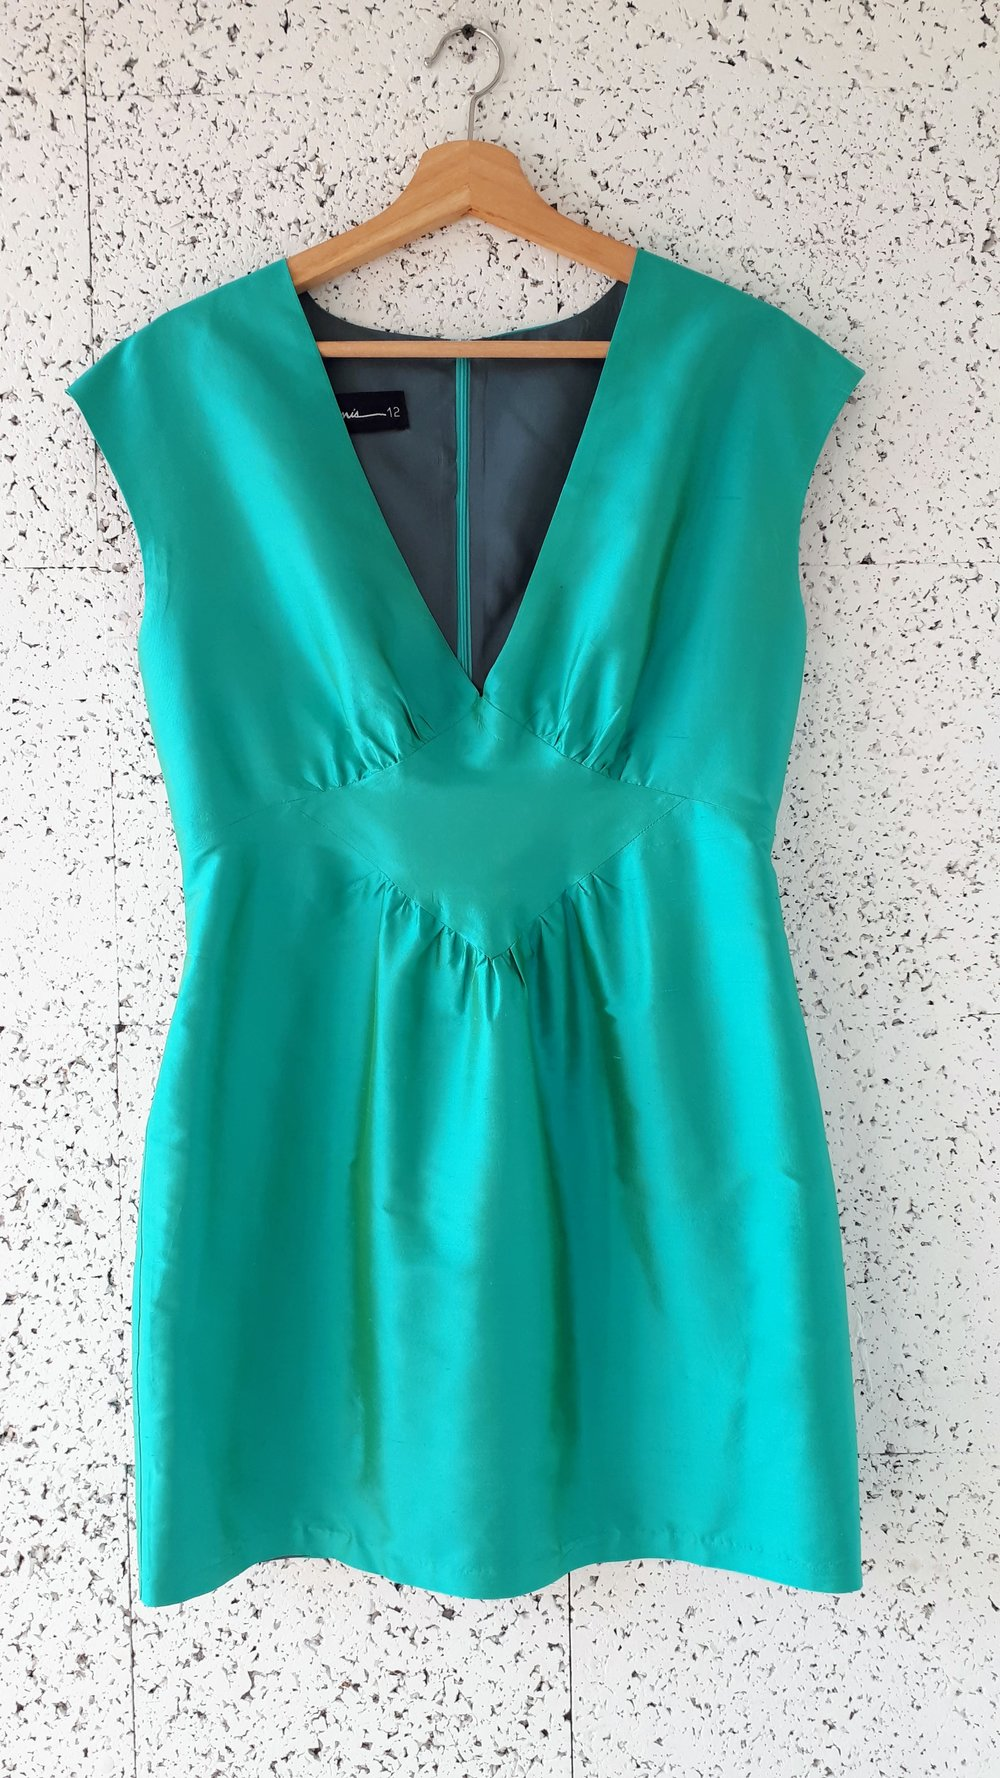 Nokomis dress; Size 12, $48